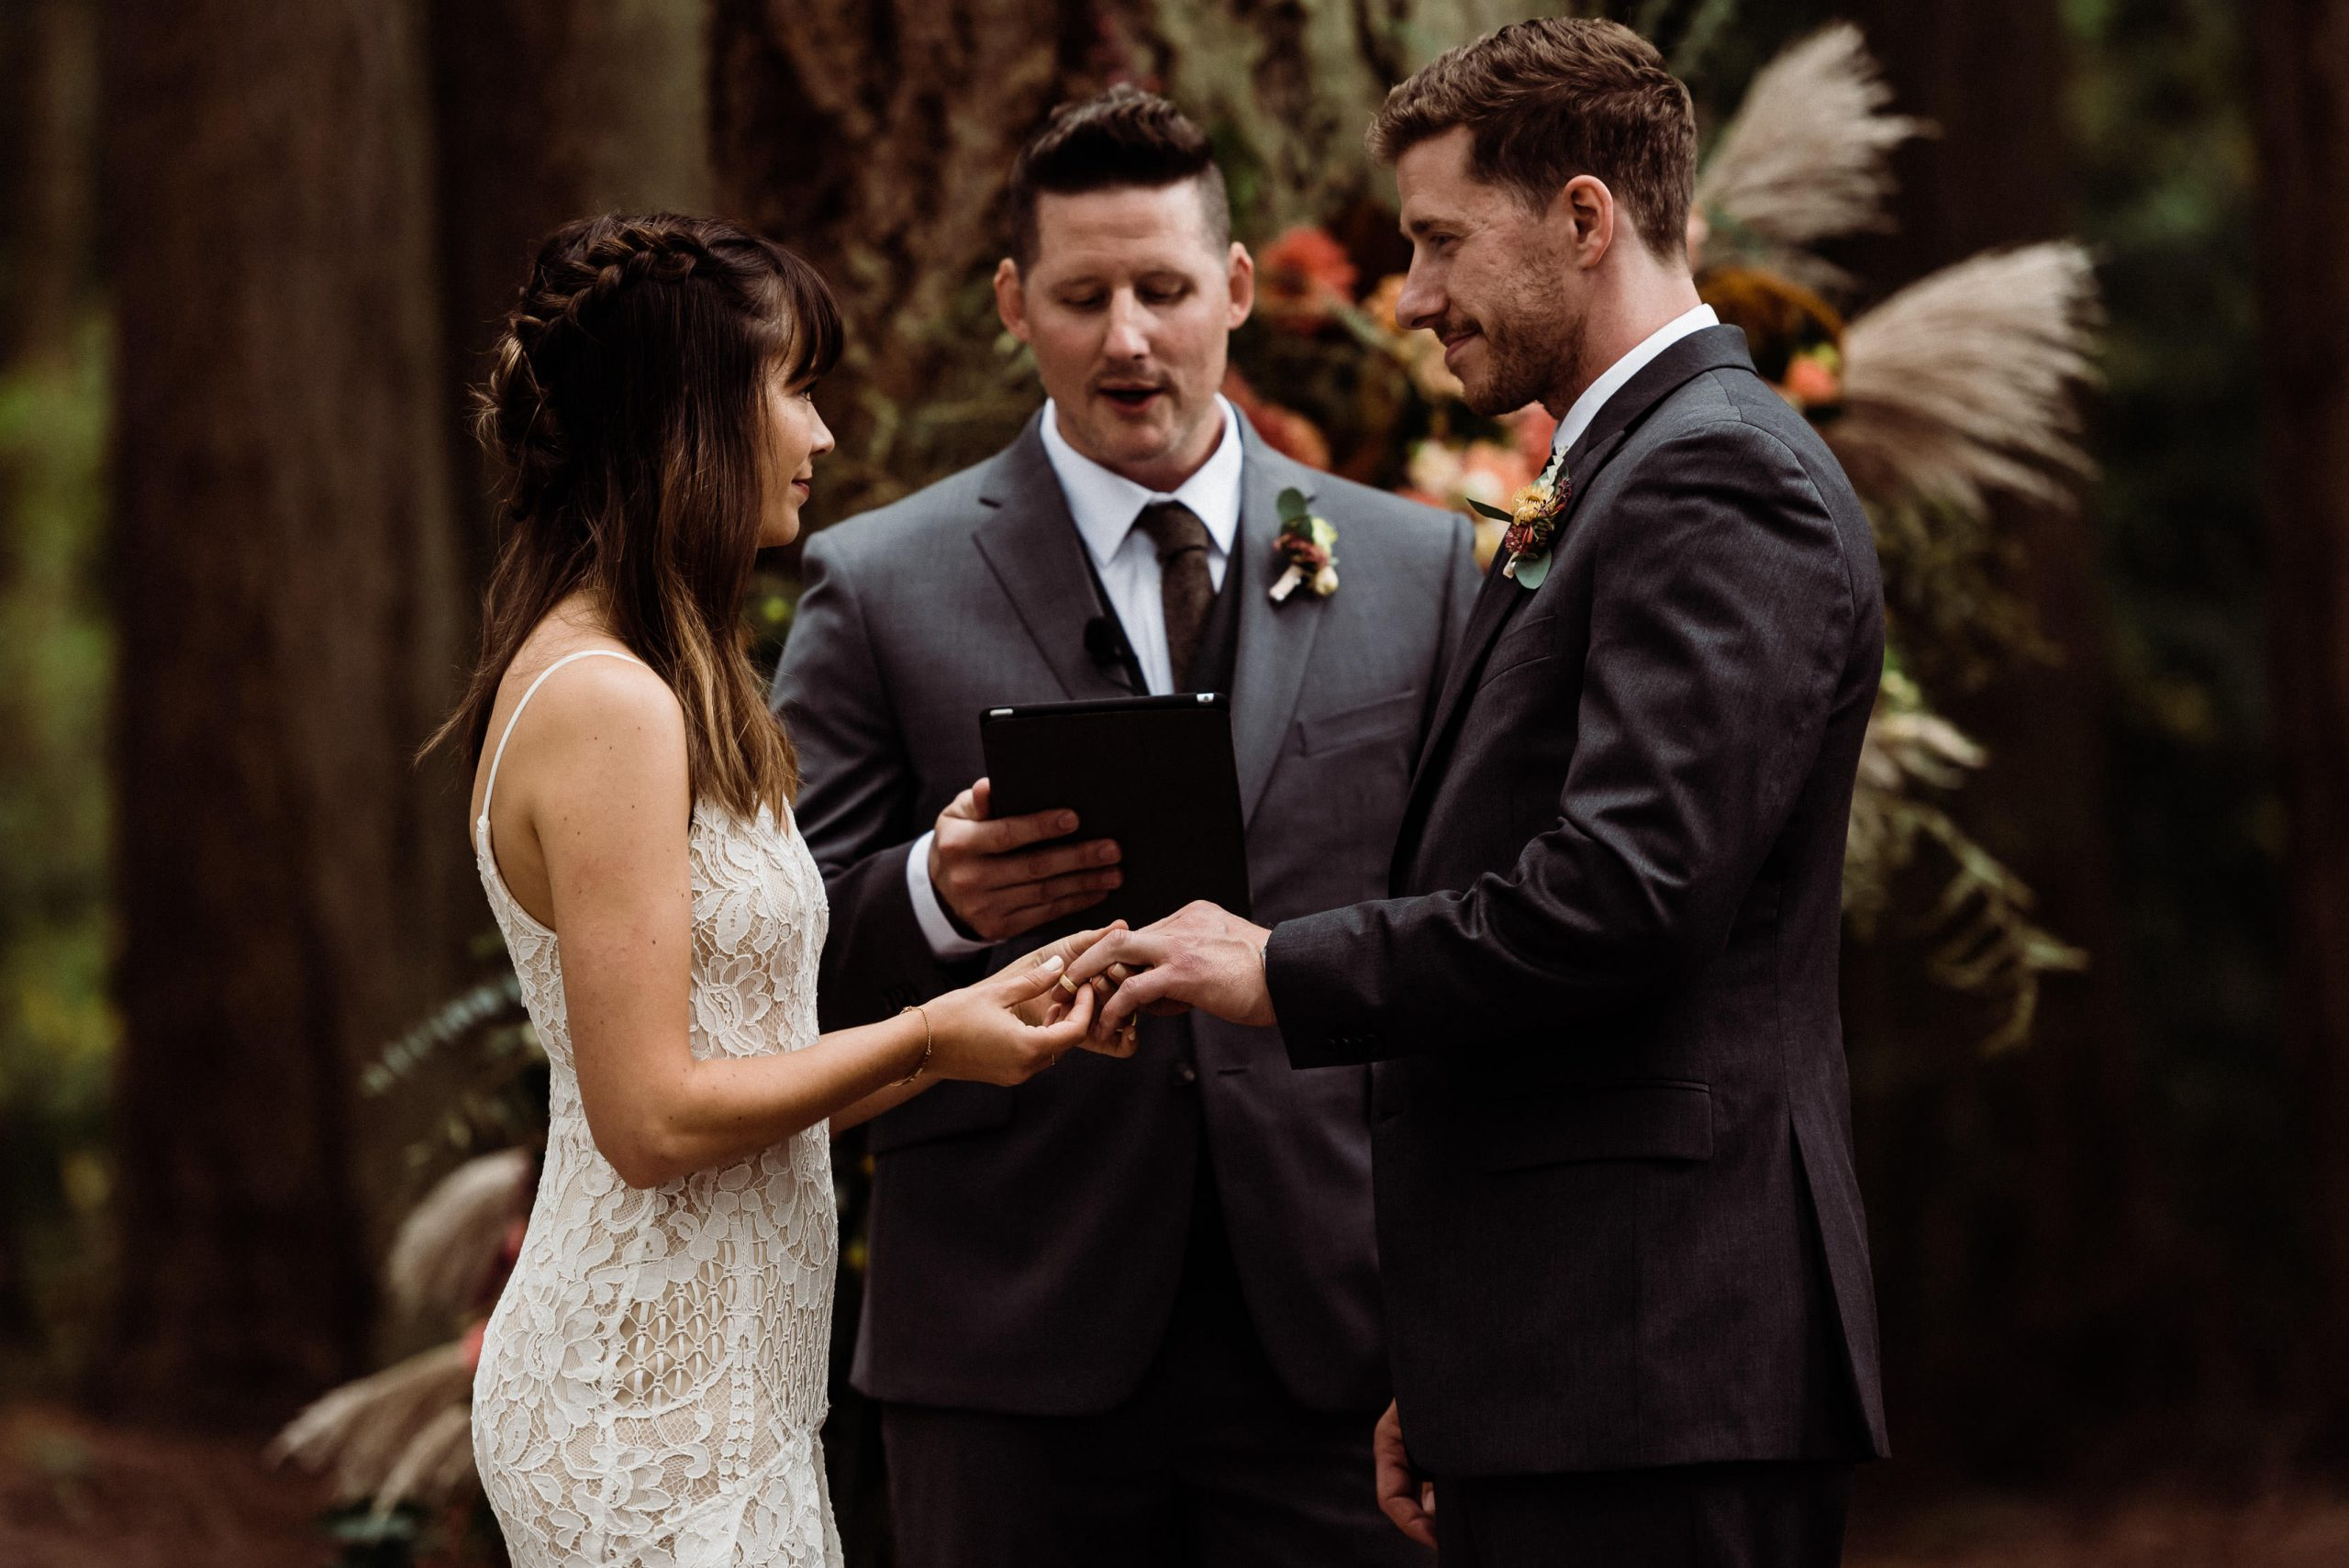 There are so many reasons to get married outdoor in the thick of nature like this couple exchanging rings during their forest wedding.